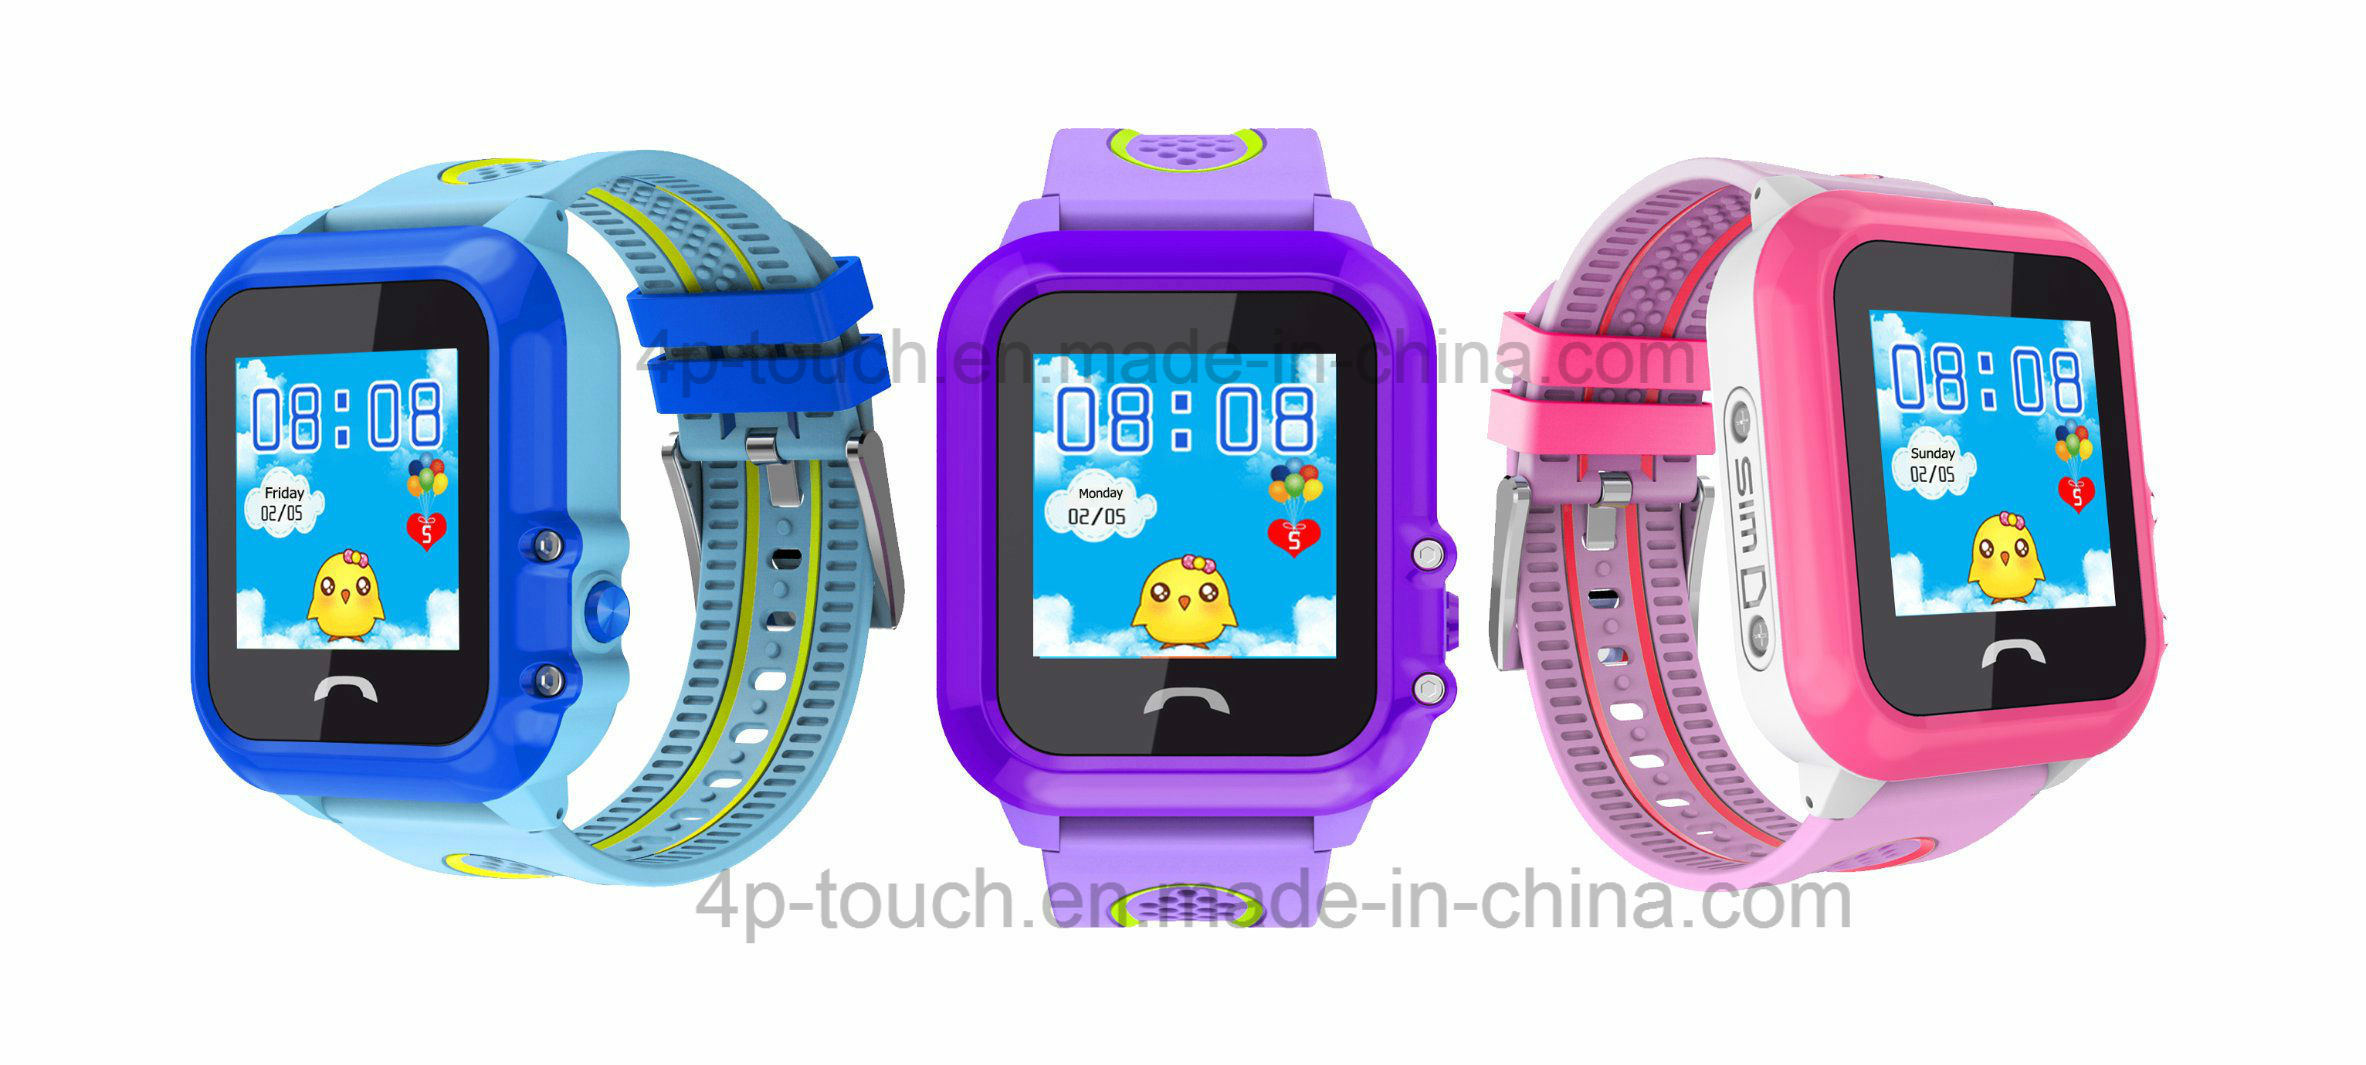 IP67 Waterproof Kids GPS Tracker Watch with Sos Button (D27) pictures & photos